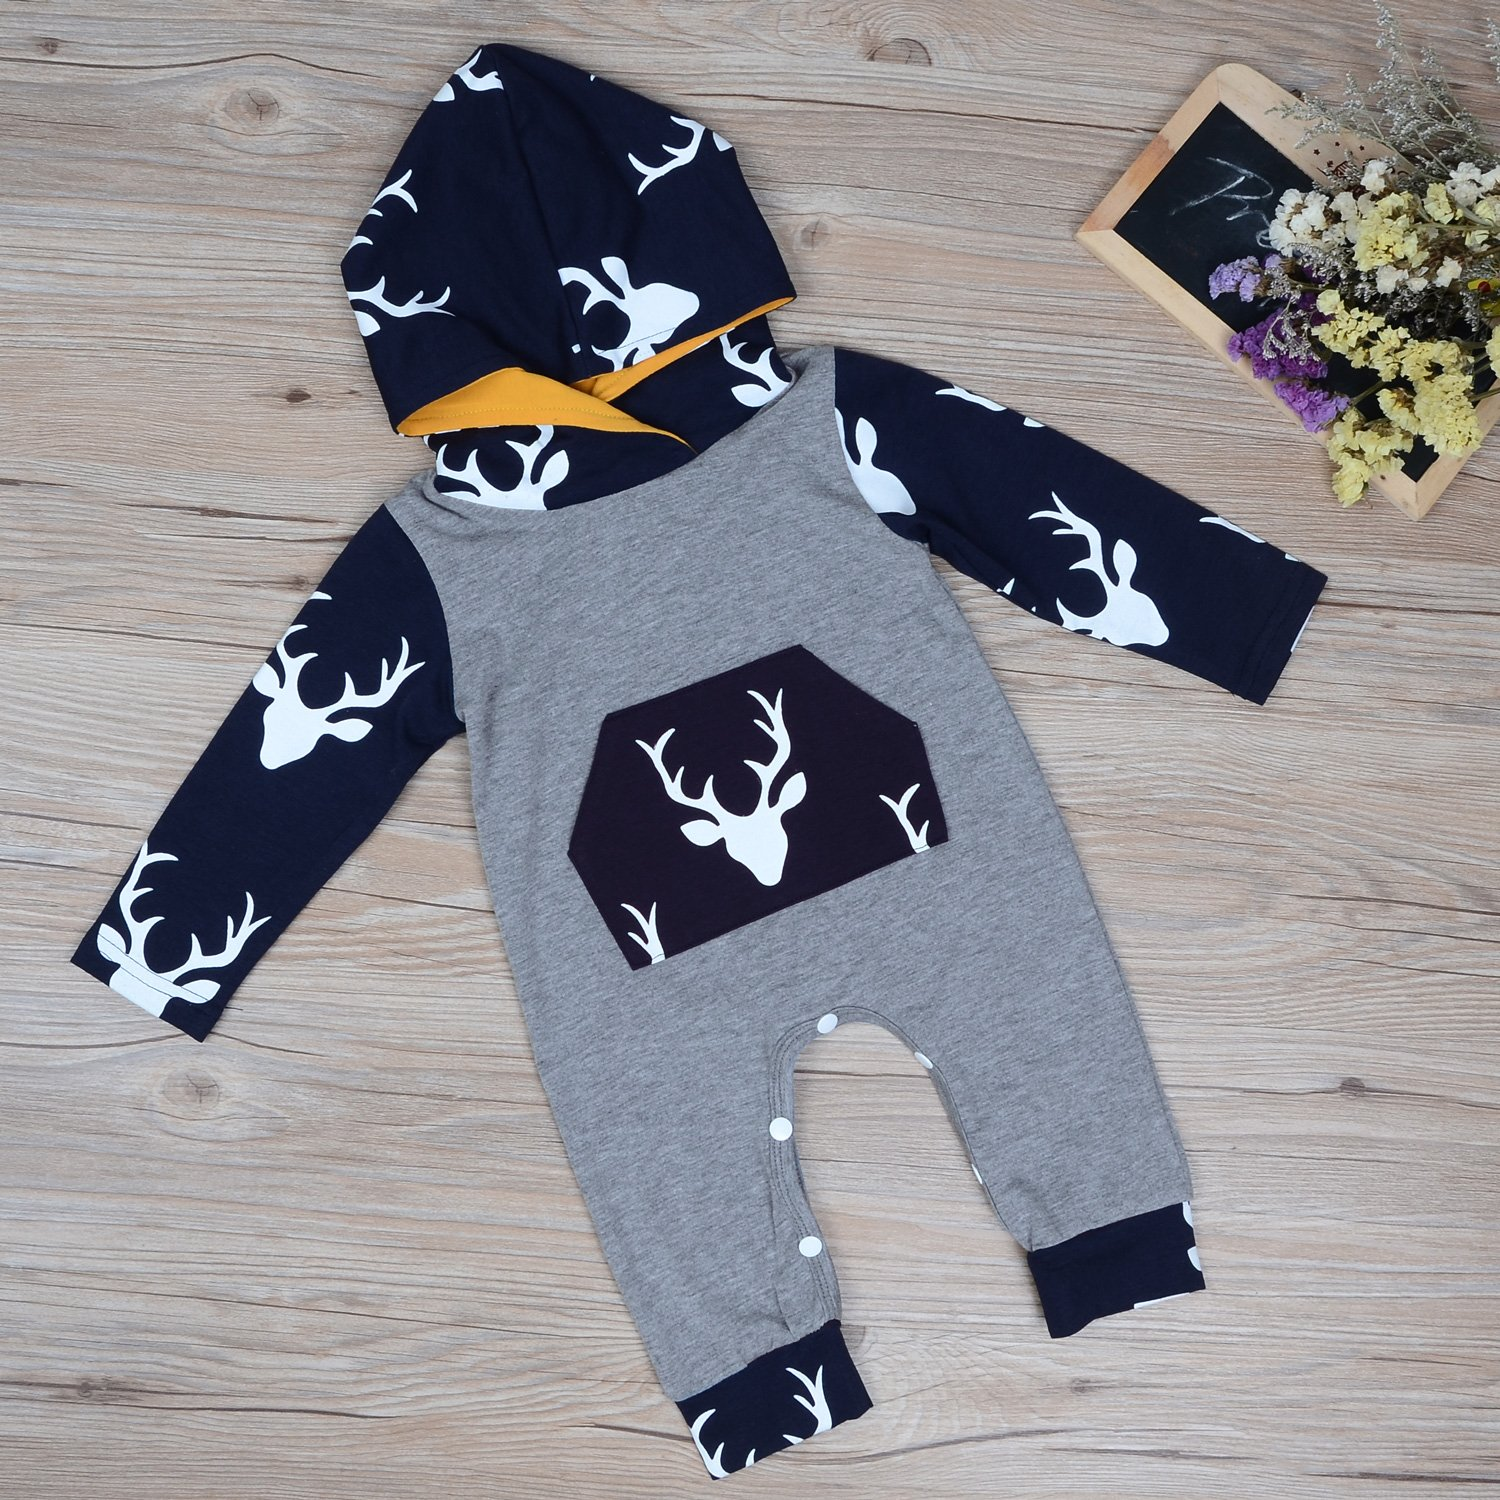 Unisex Baby Autumn Winter Hooded Sweatshirt Jumpsuit Infant Boys Girls Hoodies with Kangaroo Muff Pockets